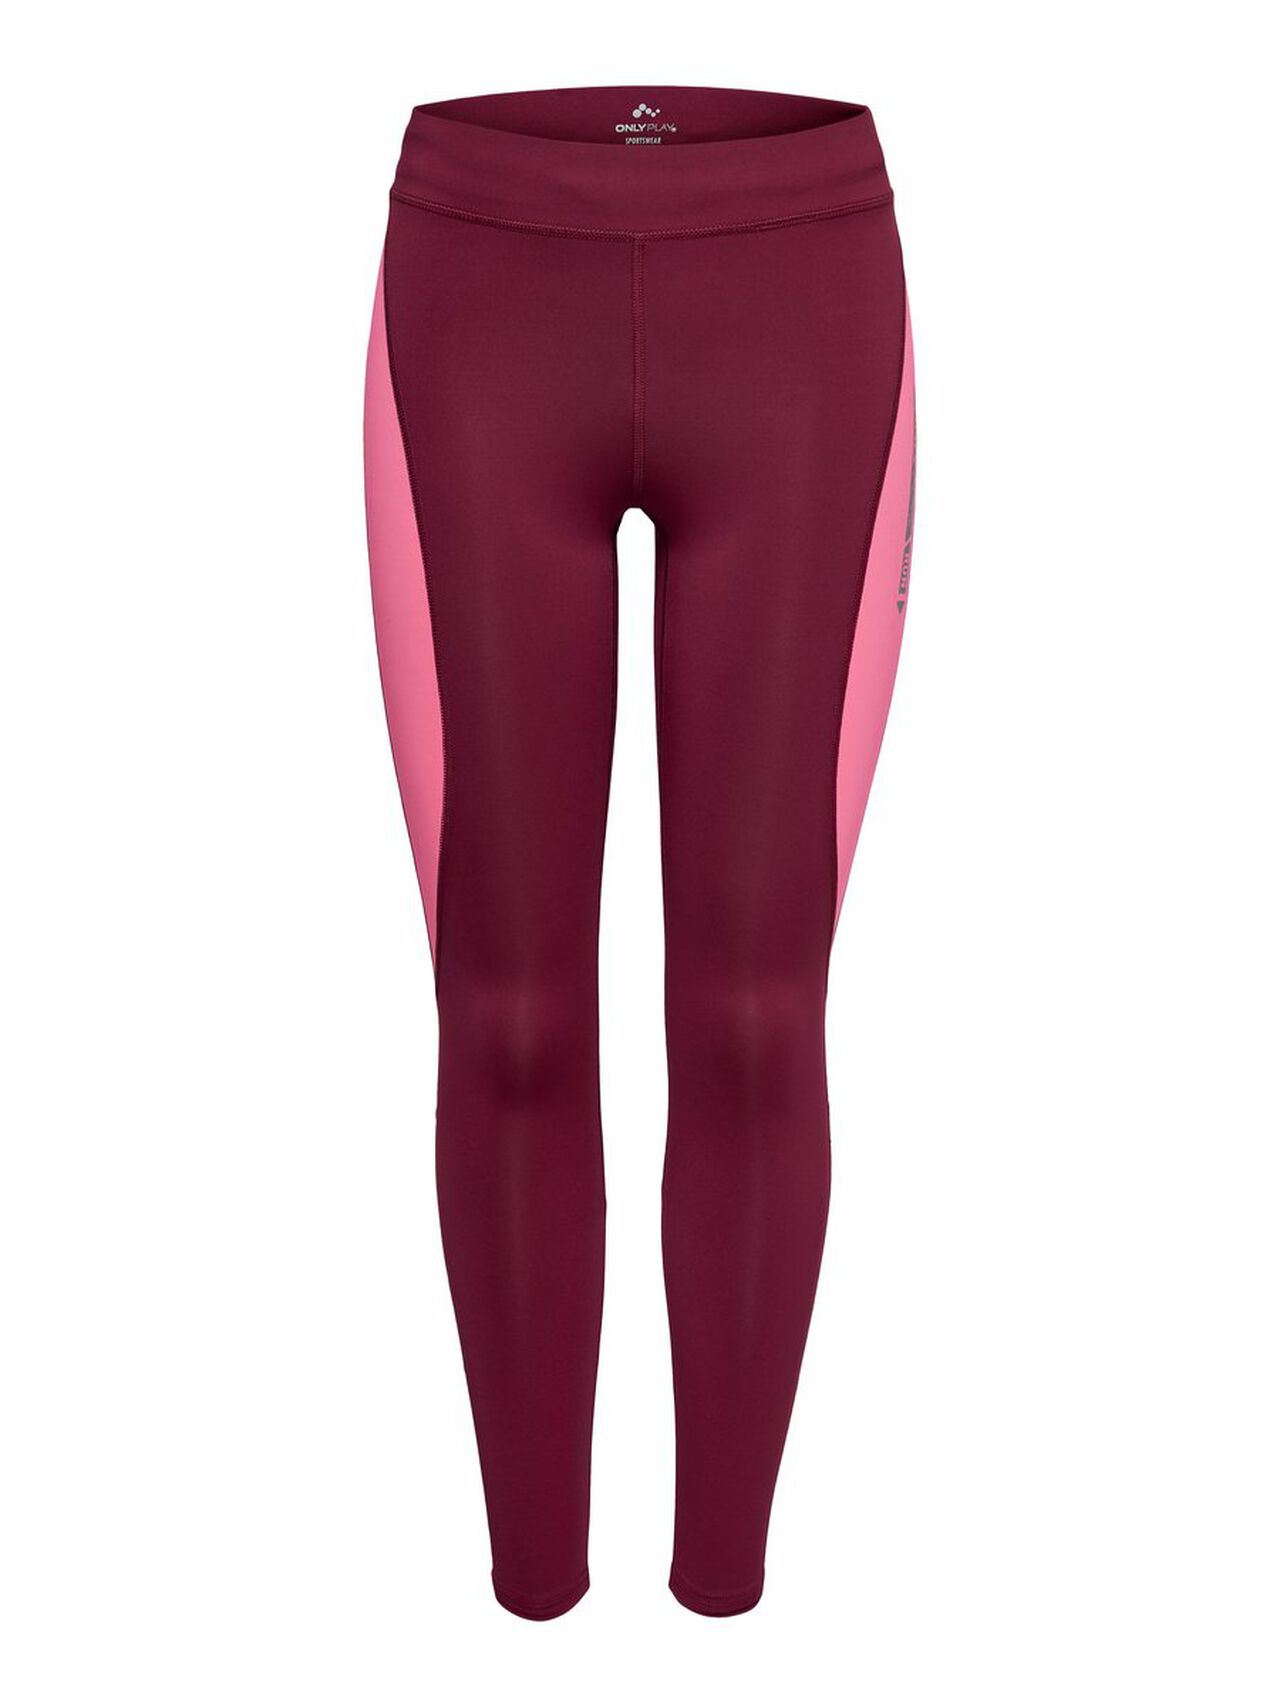 f0caa25817 ONLY RUNNING COMPRESSION TRAINING TIGHTS